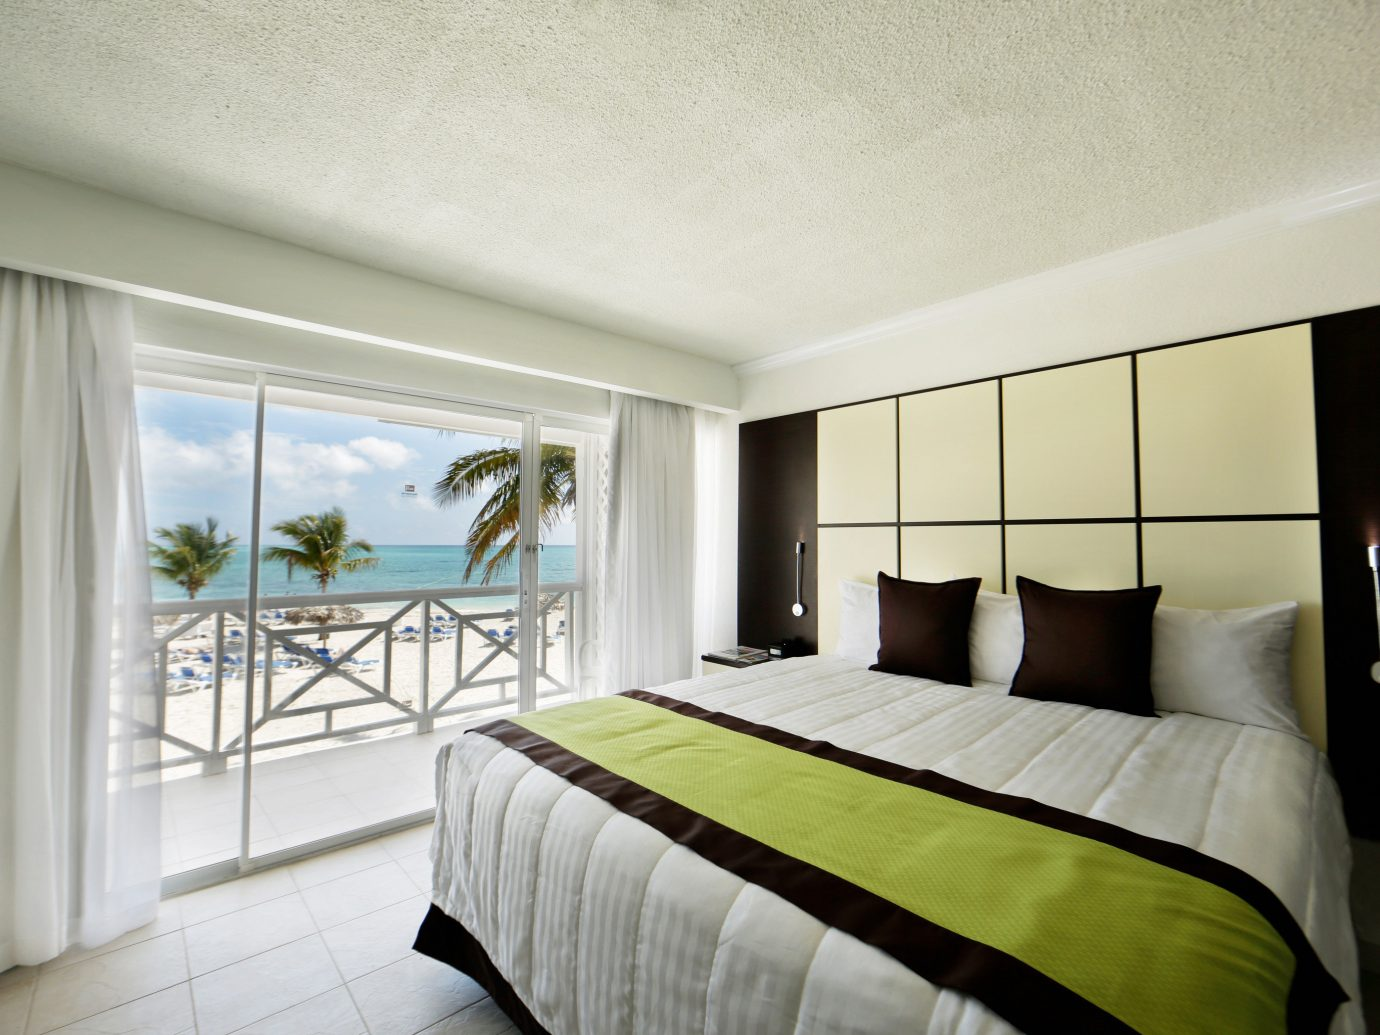 Bedroom at Viva Wyndham Fortuna Beach